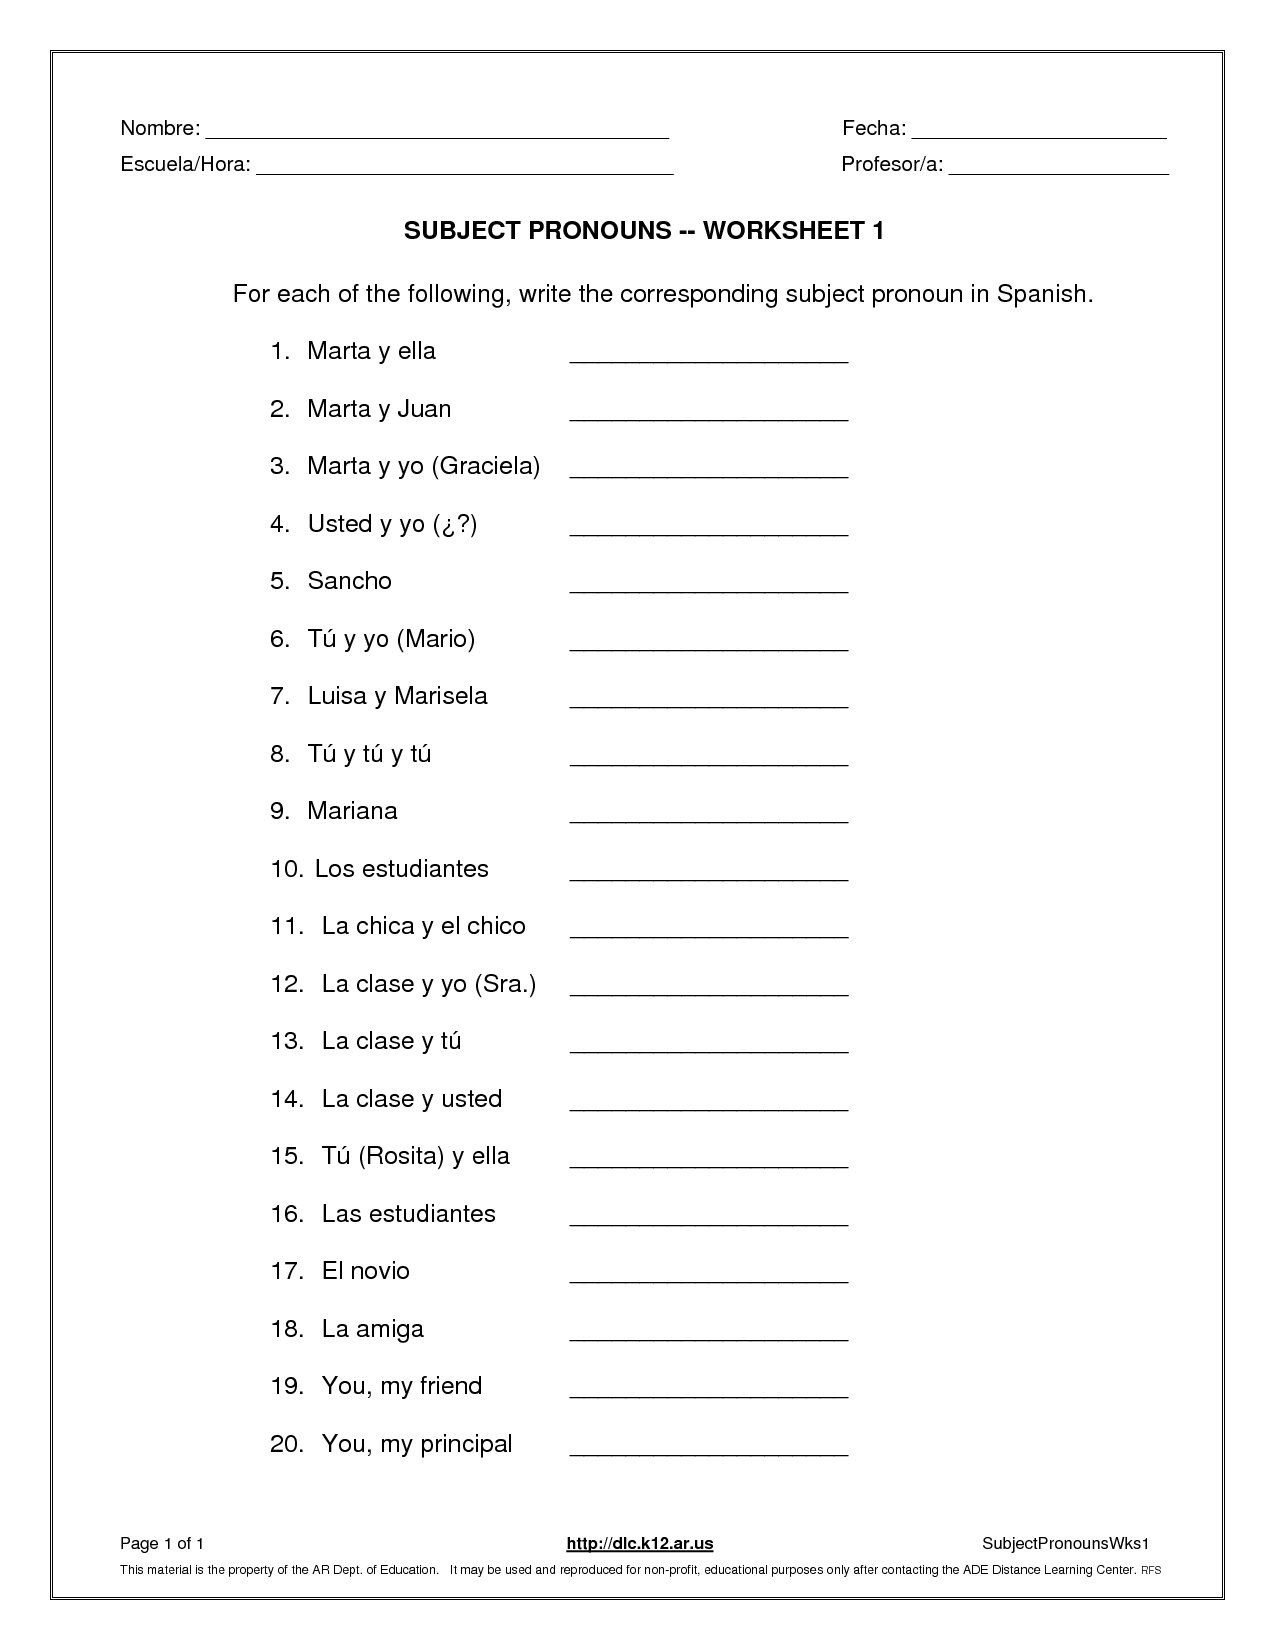 Subject Pronouns Worksheet 1 Spanish Answer Key